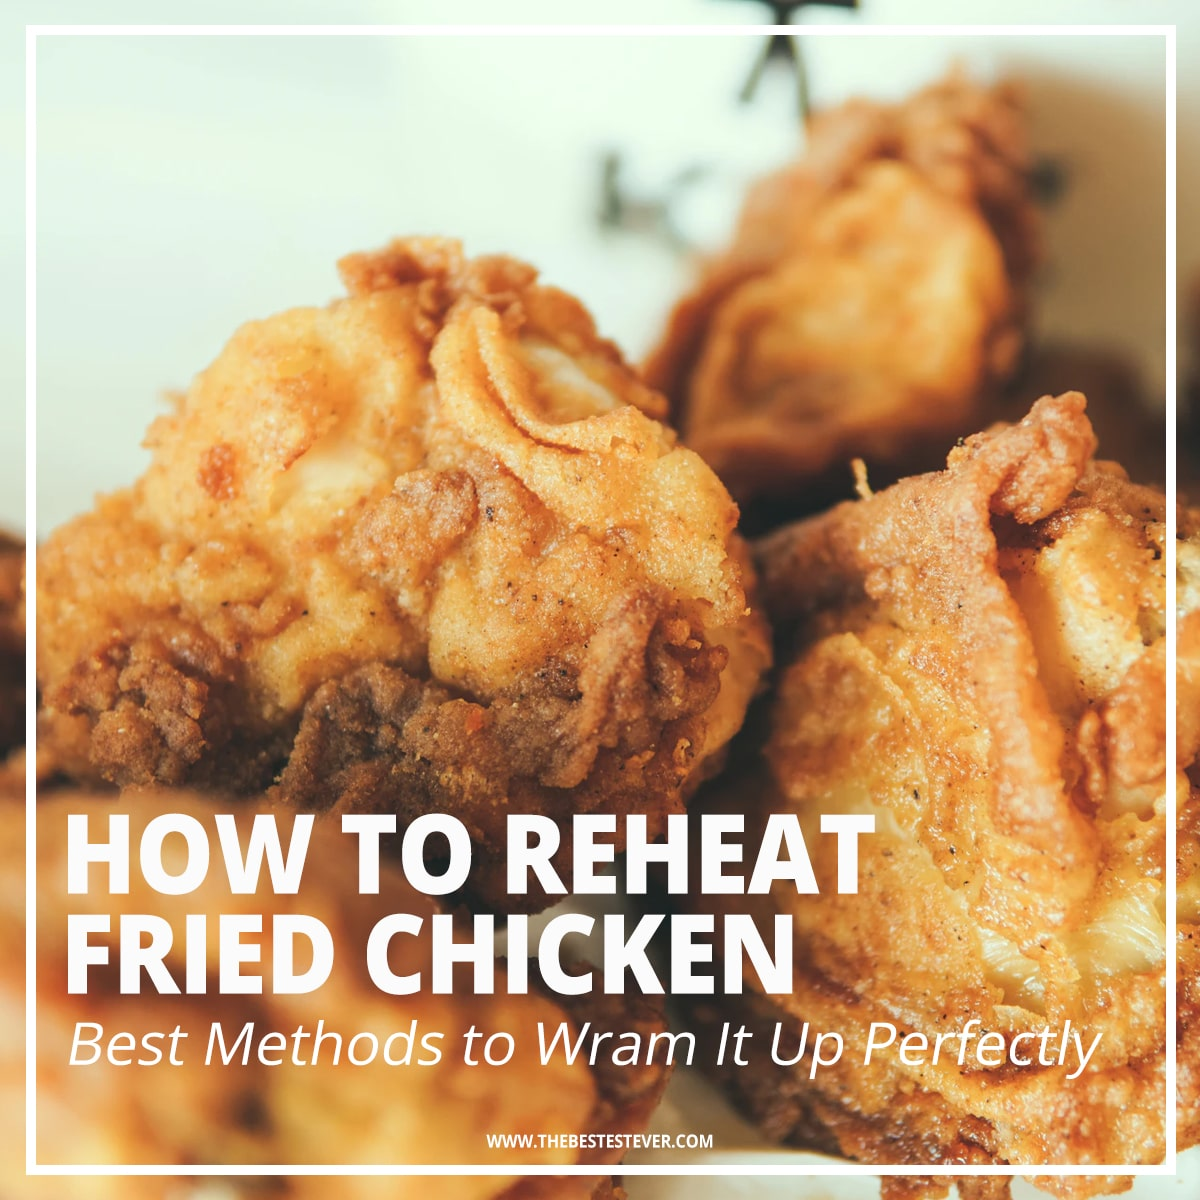 How to Reheat Fried Chicken: 4 Best Methods to Use